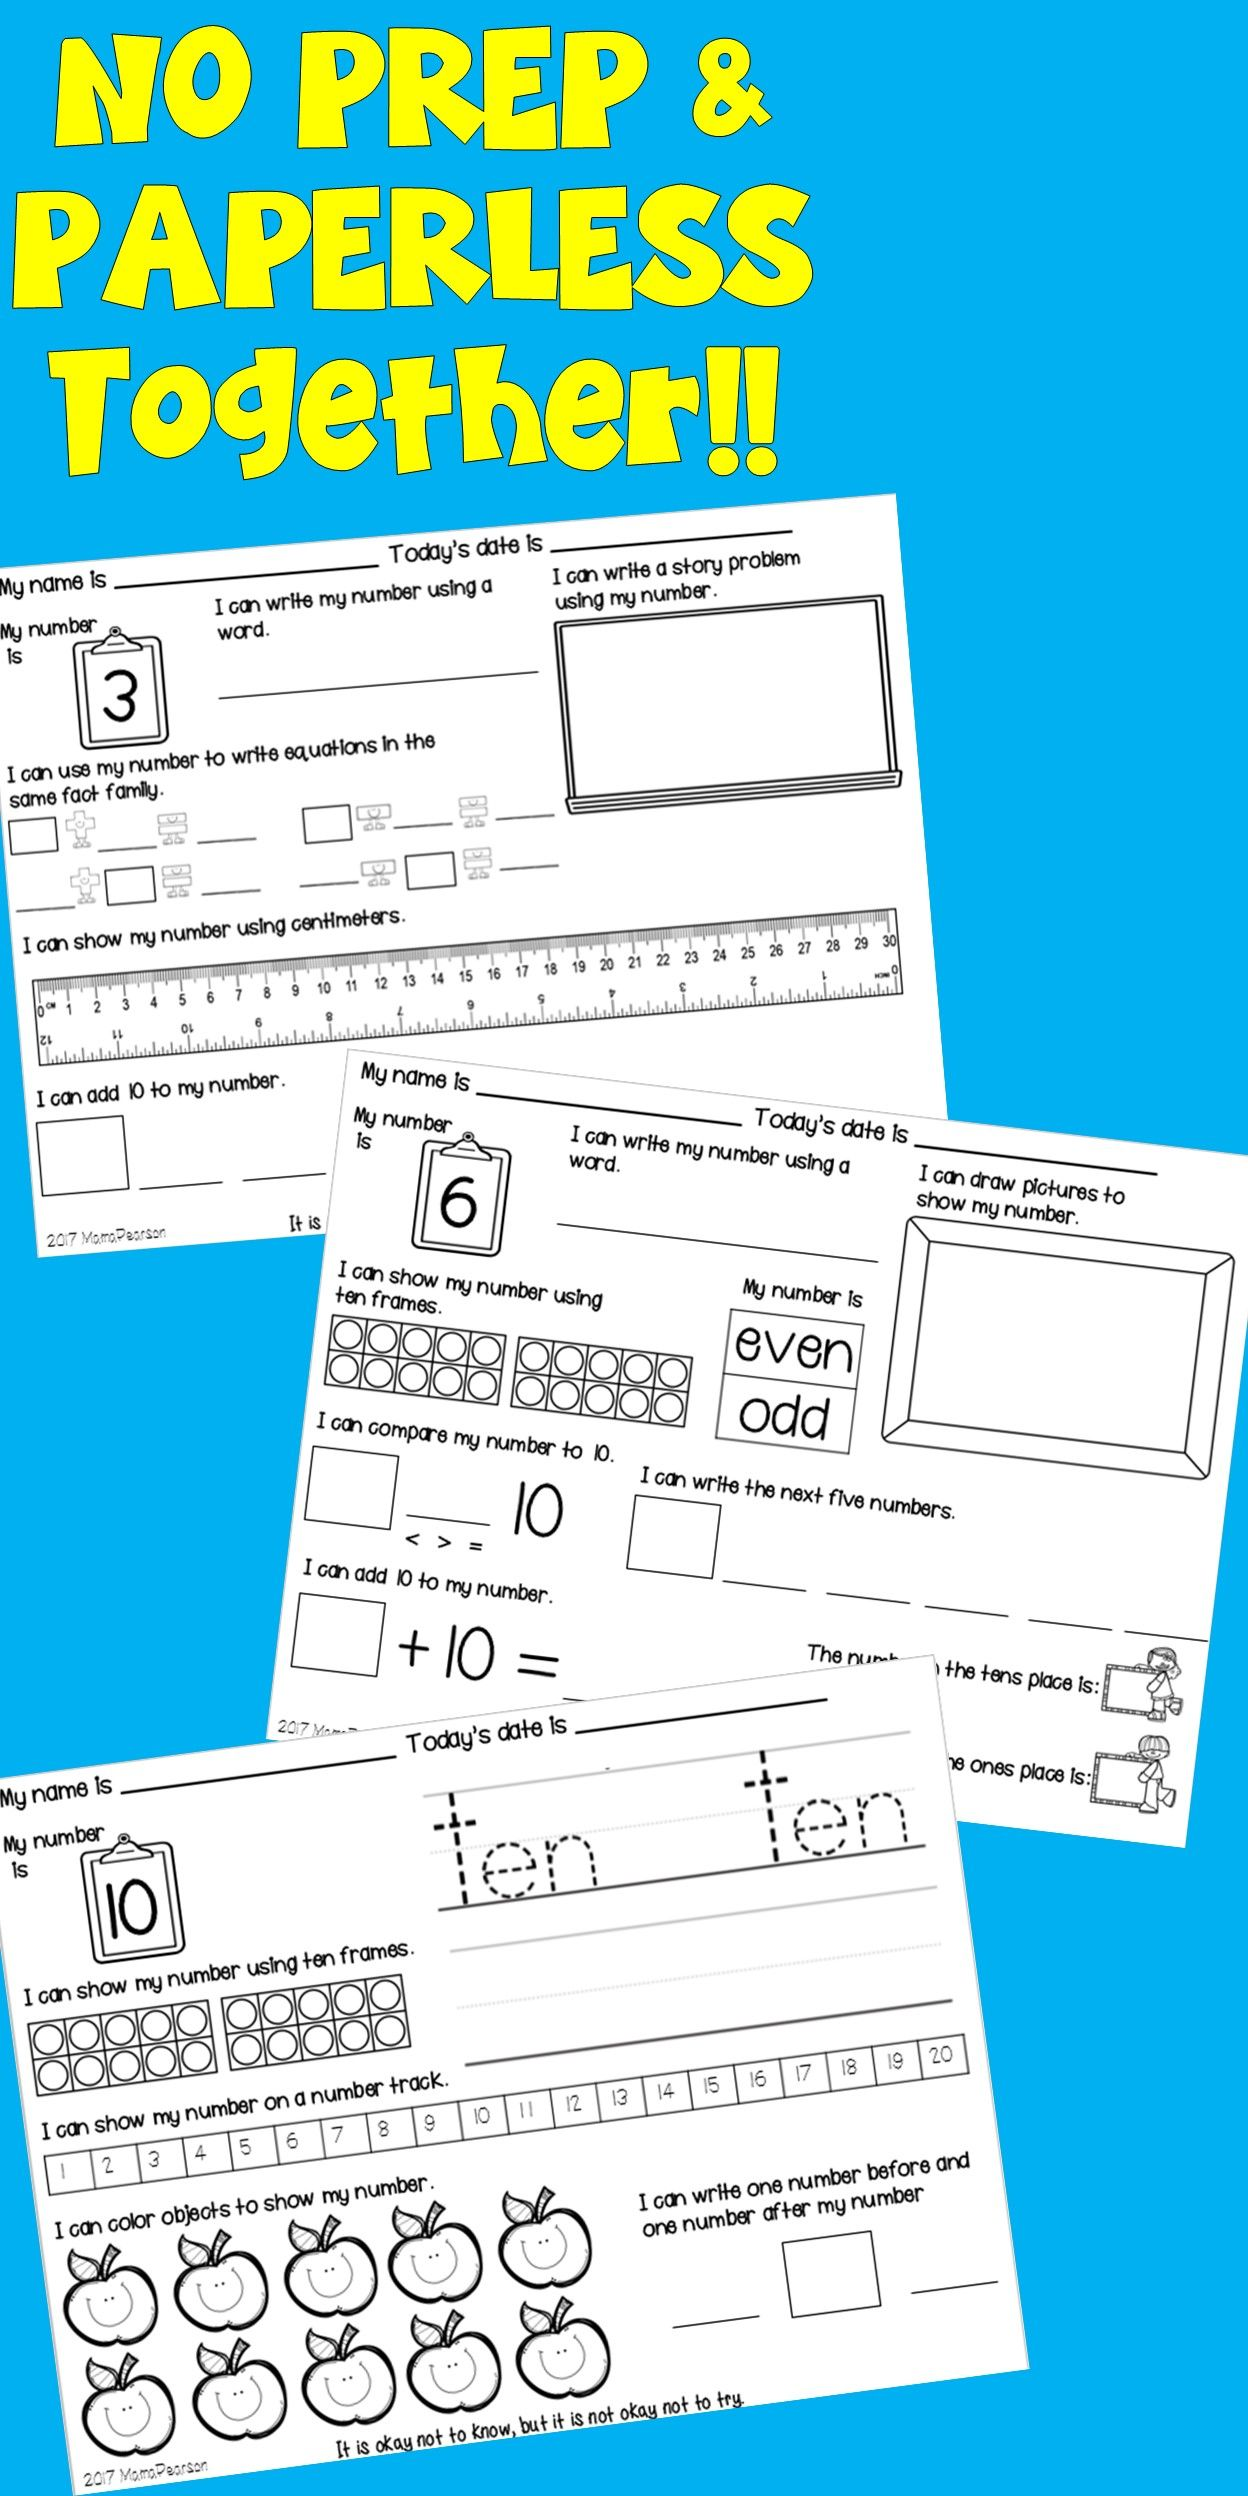 207 Pages Of Paperless And No Prep Printable Sheets To Help Your Students With Numeracy They Will Love These 1st Grade Math Math Math For Kids [ 2496 x 1248 Pixel ]